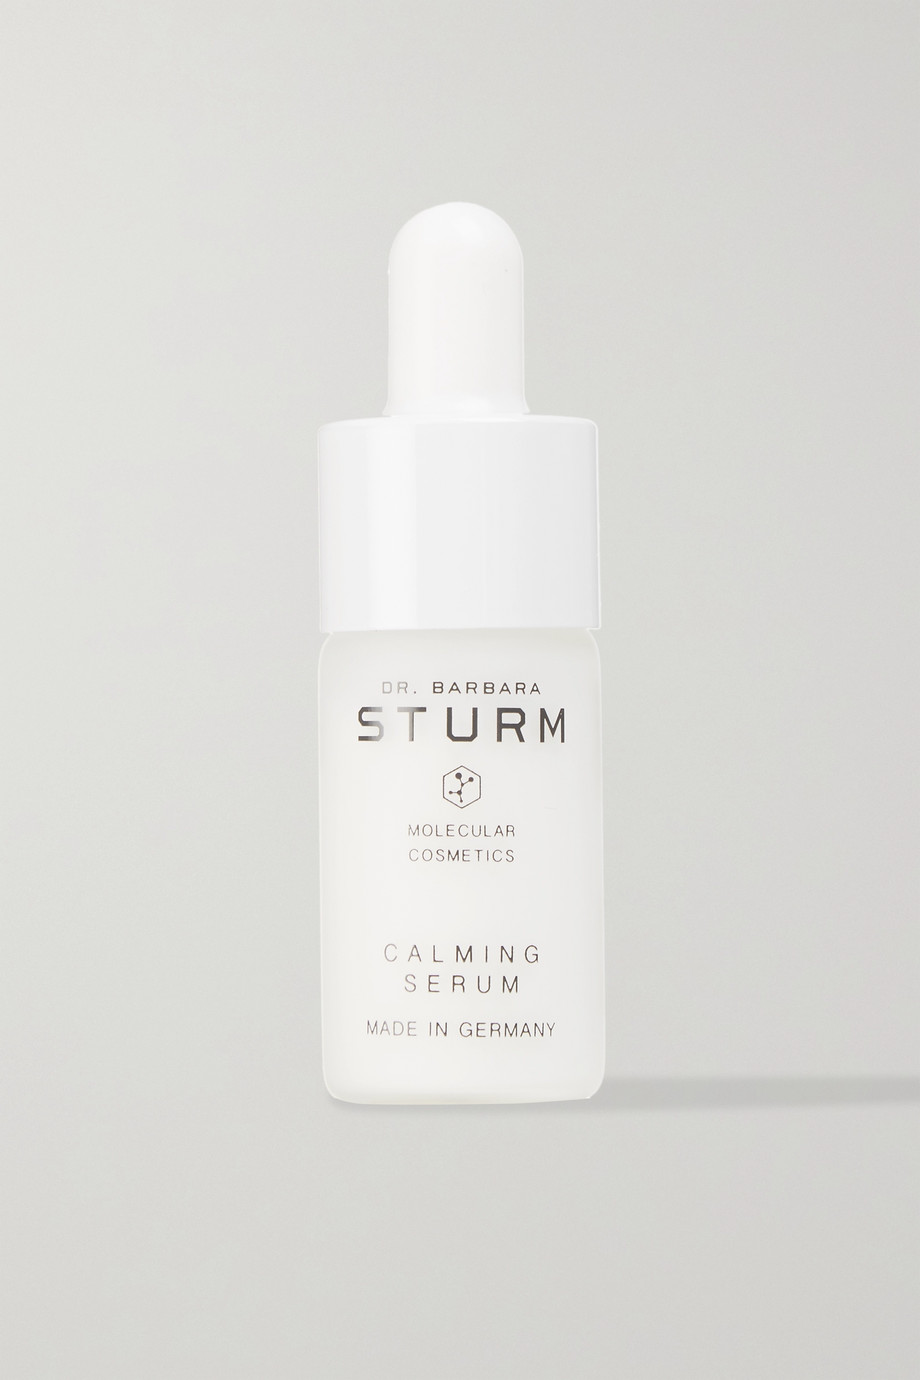 Dr. Barbara Sturm Mini Calming Serum, 10 ml – Serum